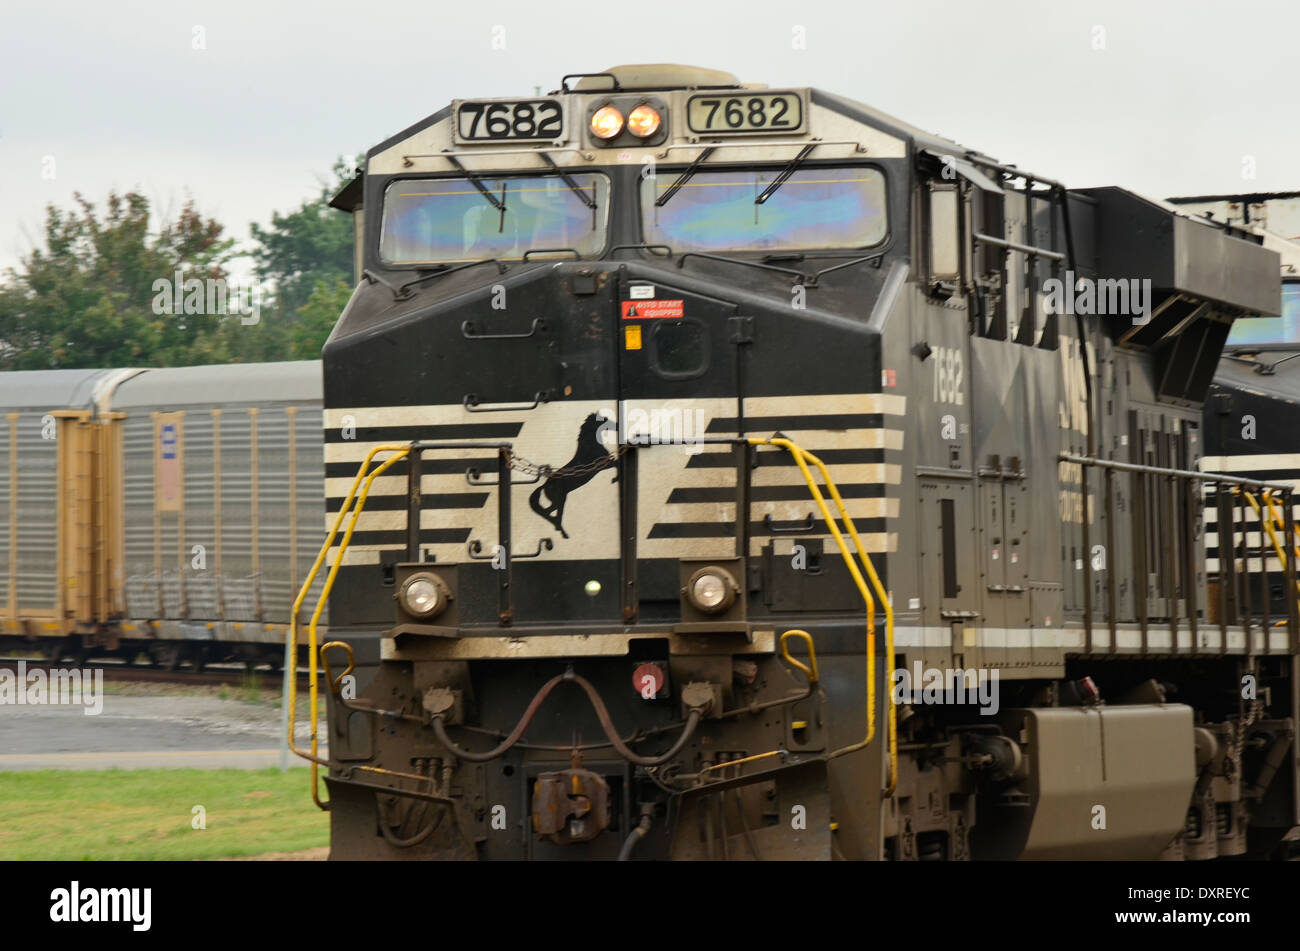 Train locomotive engine - Stock Image